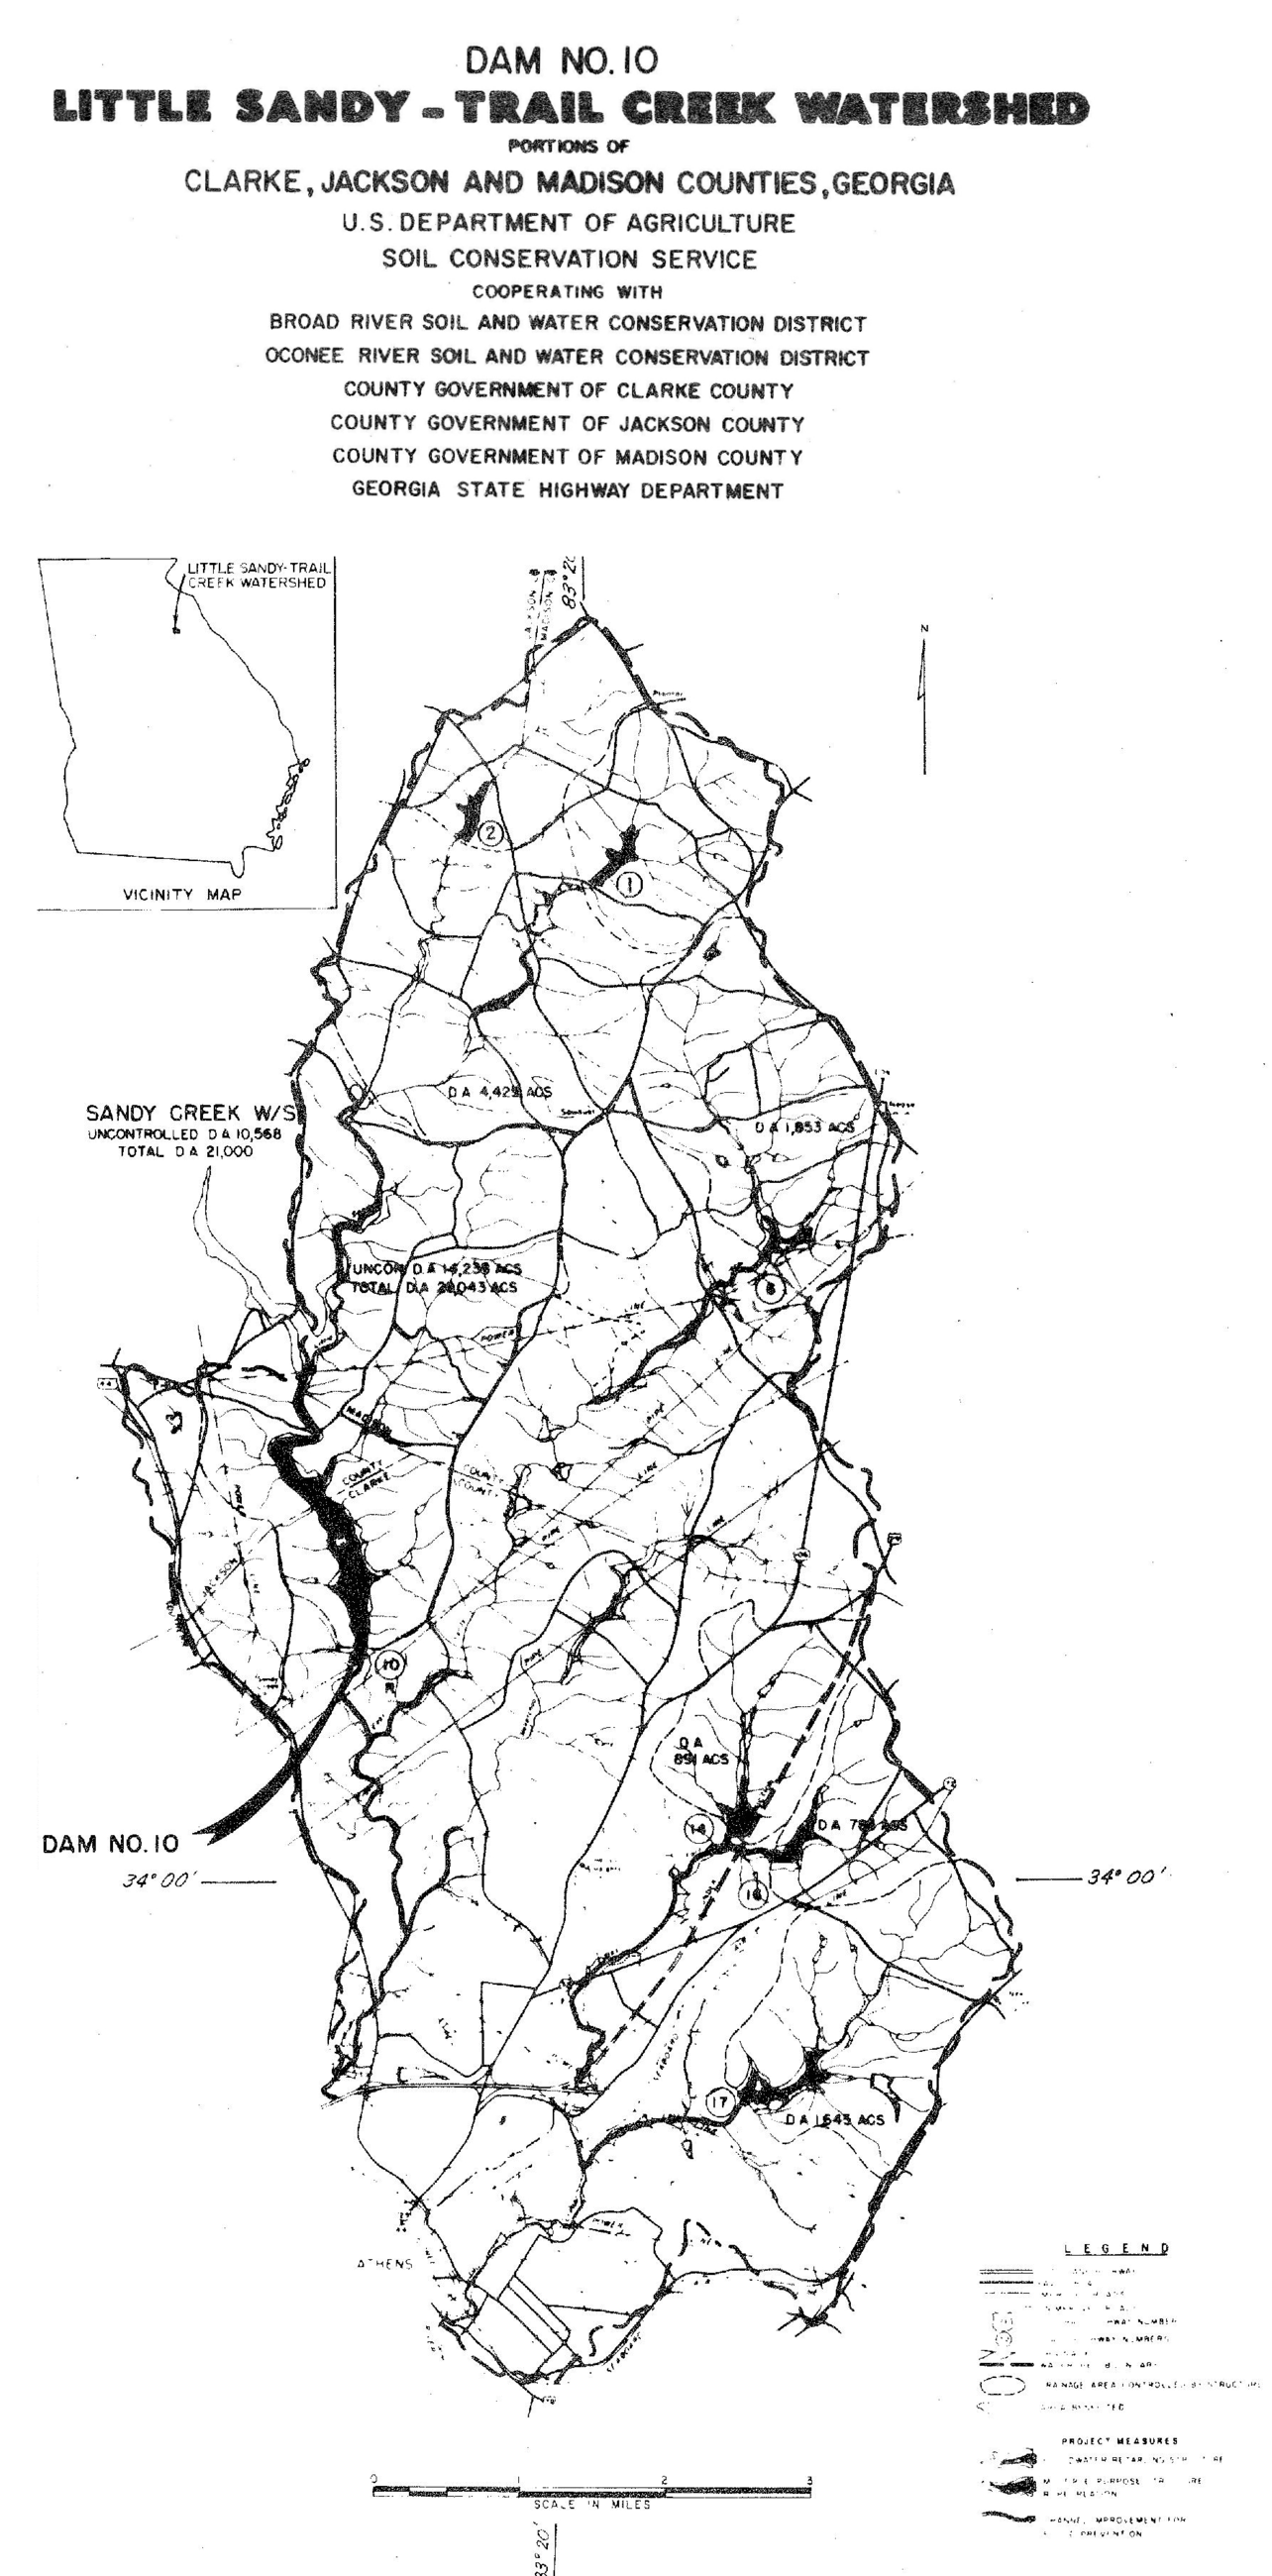 Original watershed project map from the proposal by Clarke, Jackson, and Madison counties.